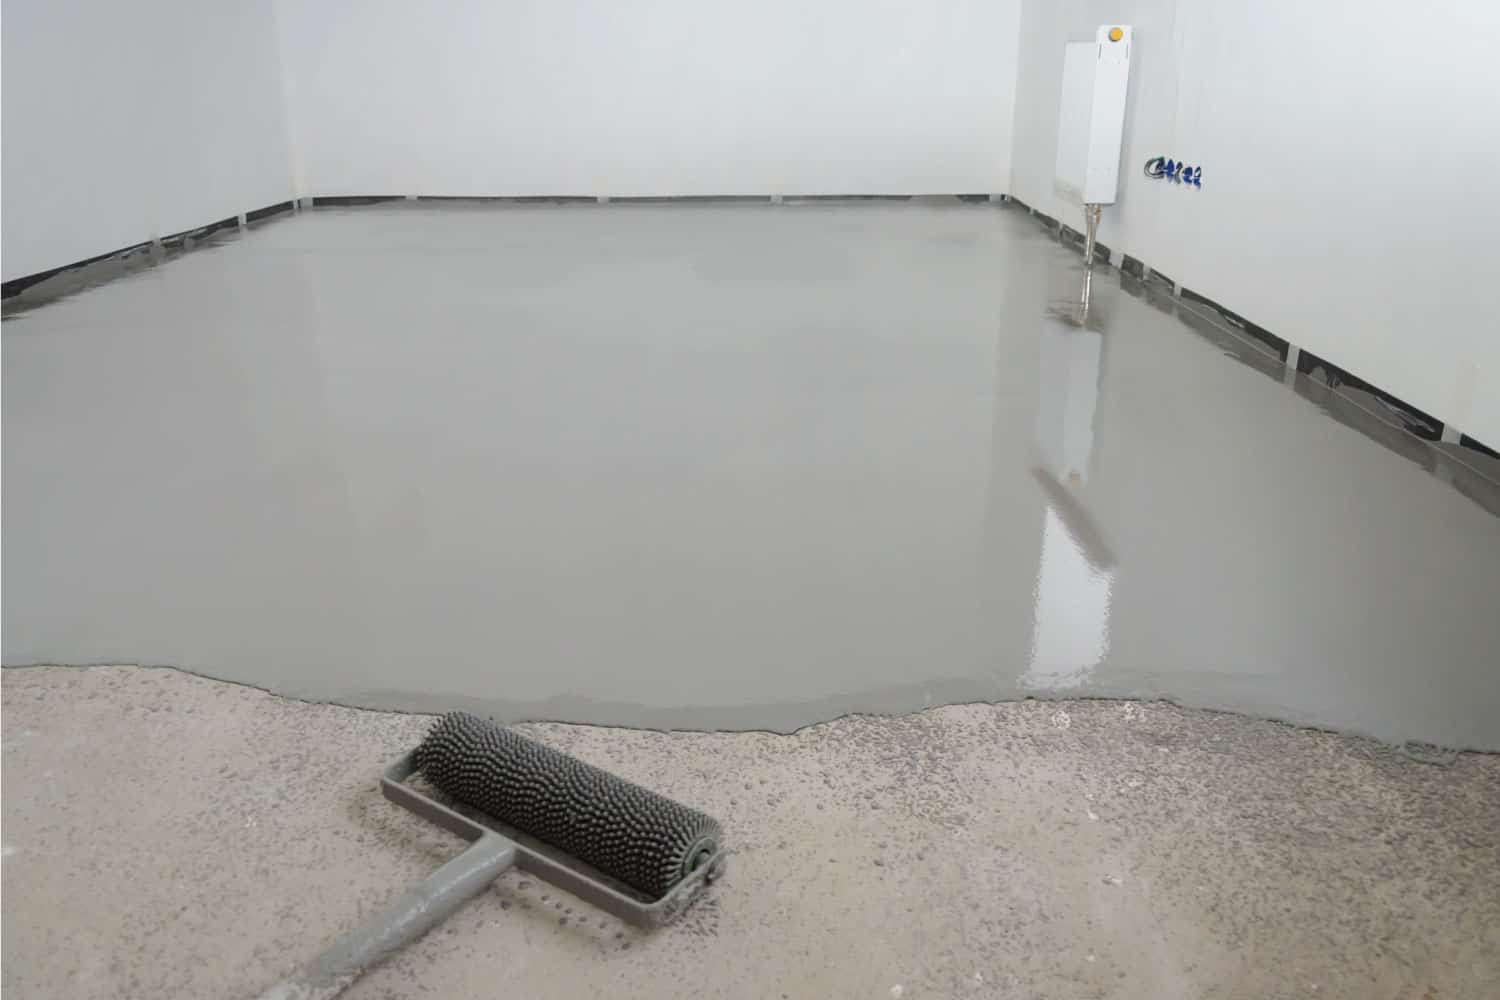 elf-leveling epoxy. Leveling with a mixture of cement floors